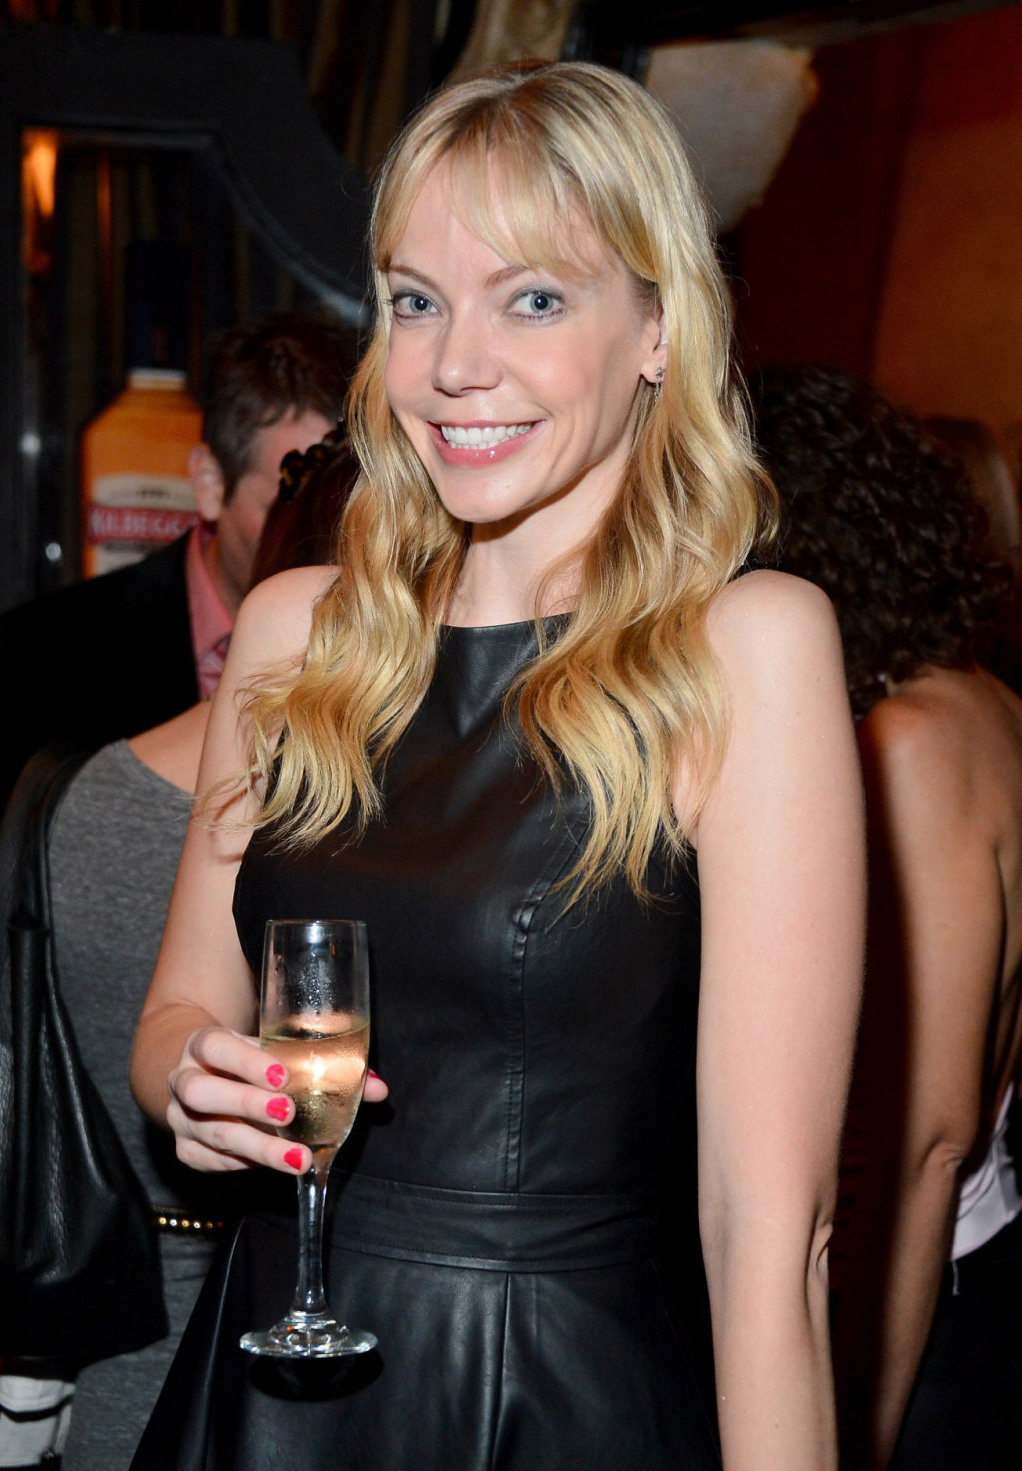 Cleavage Riki Lindhome nude photos 2019